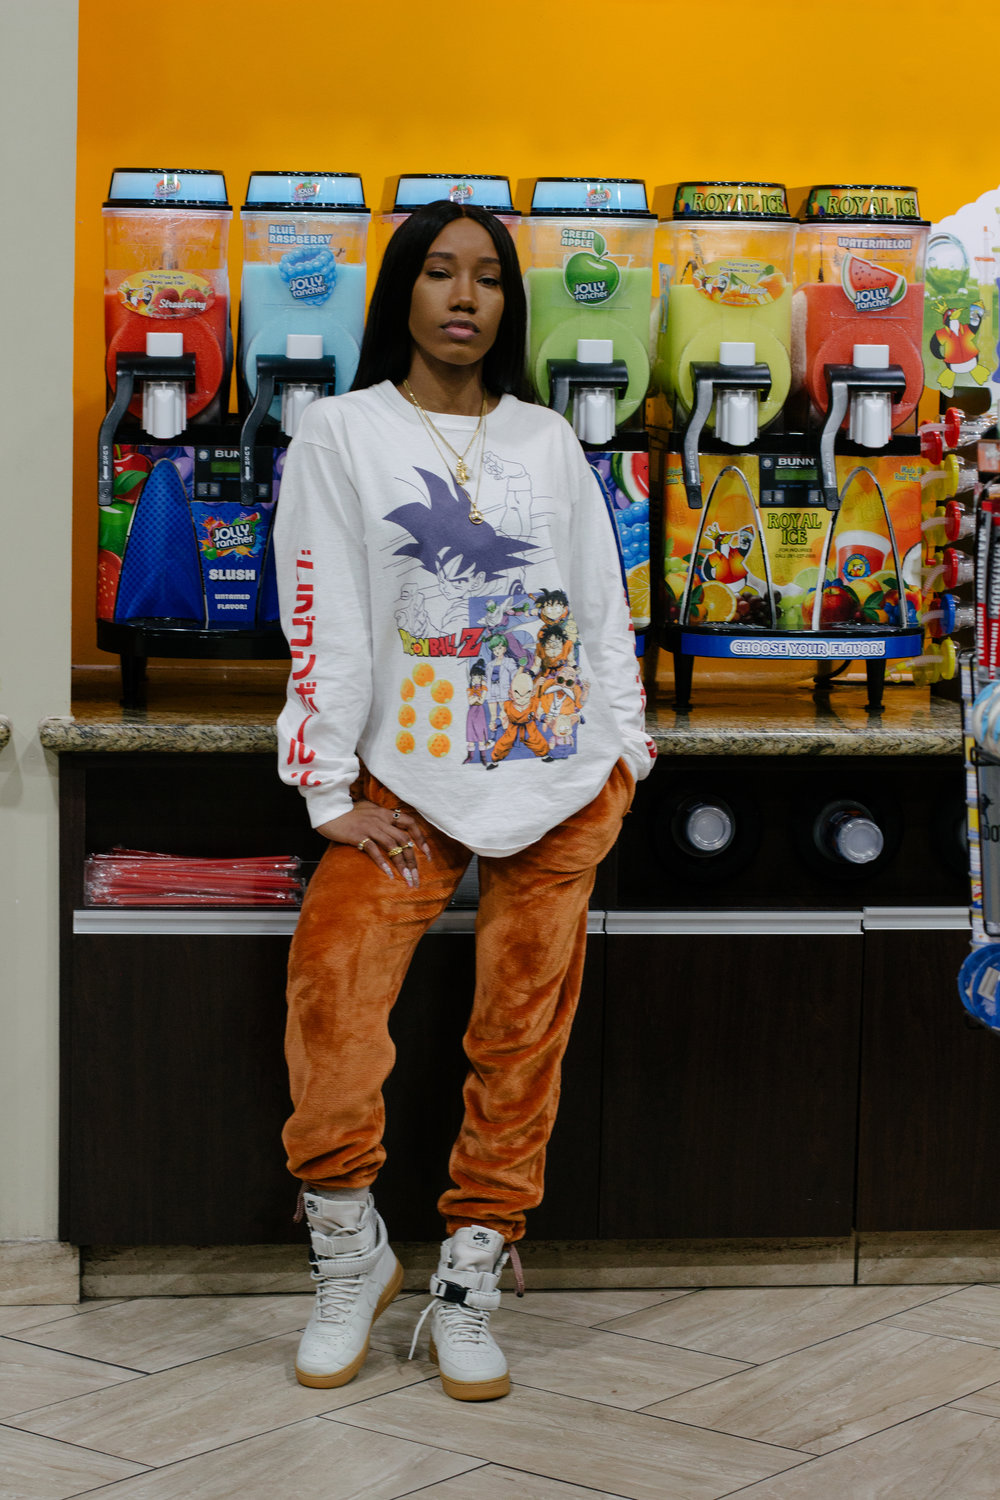 Dragon Ball Z - t-shirt - graphic tee - comfy sweatpants - shecozy - womens streetwear - urban outfitters - nike special AF 1's - chicks in kicks - nice kicks - female sneakerfiend - comfy winter outfit - hypebae - hype bae